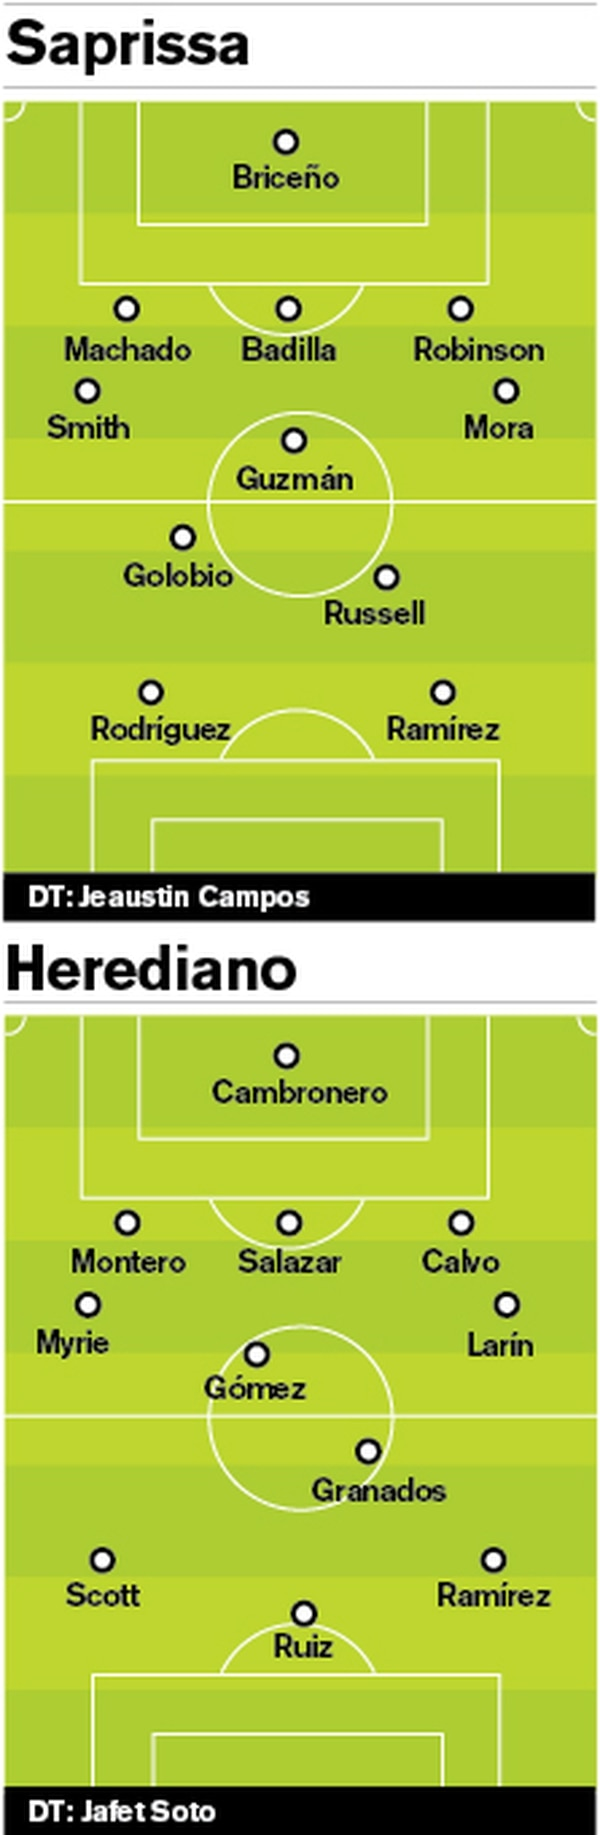 Alineaciones Saprissa Herediano